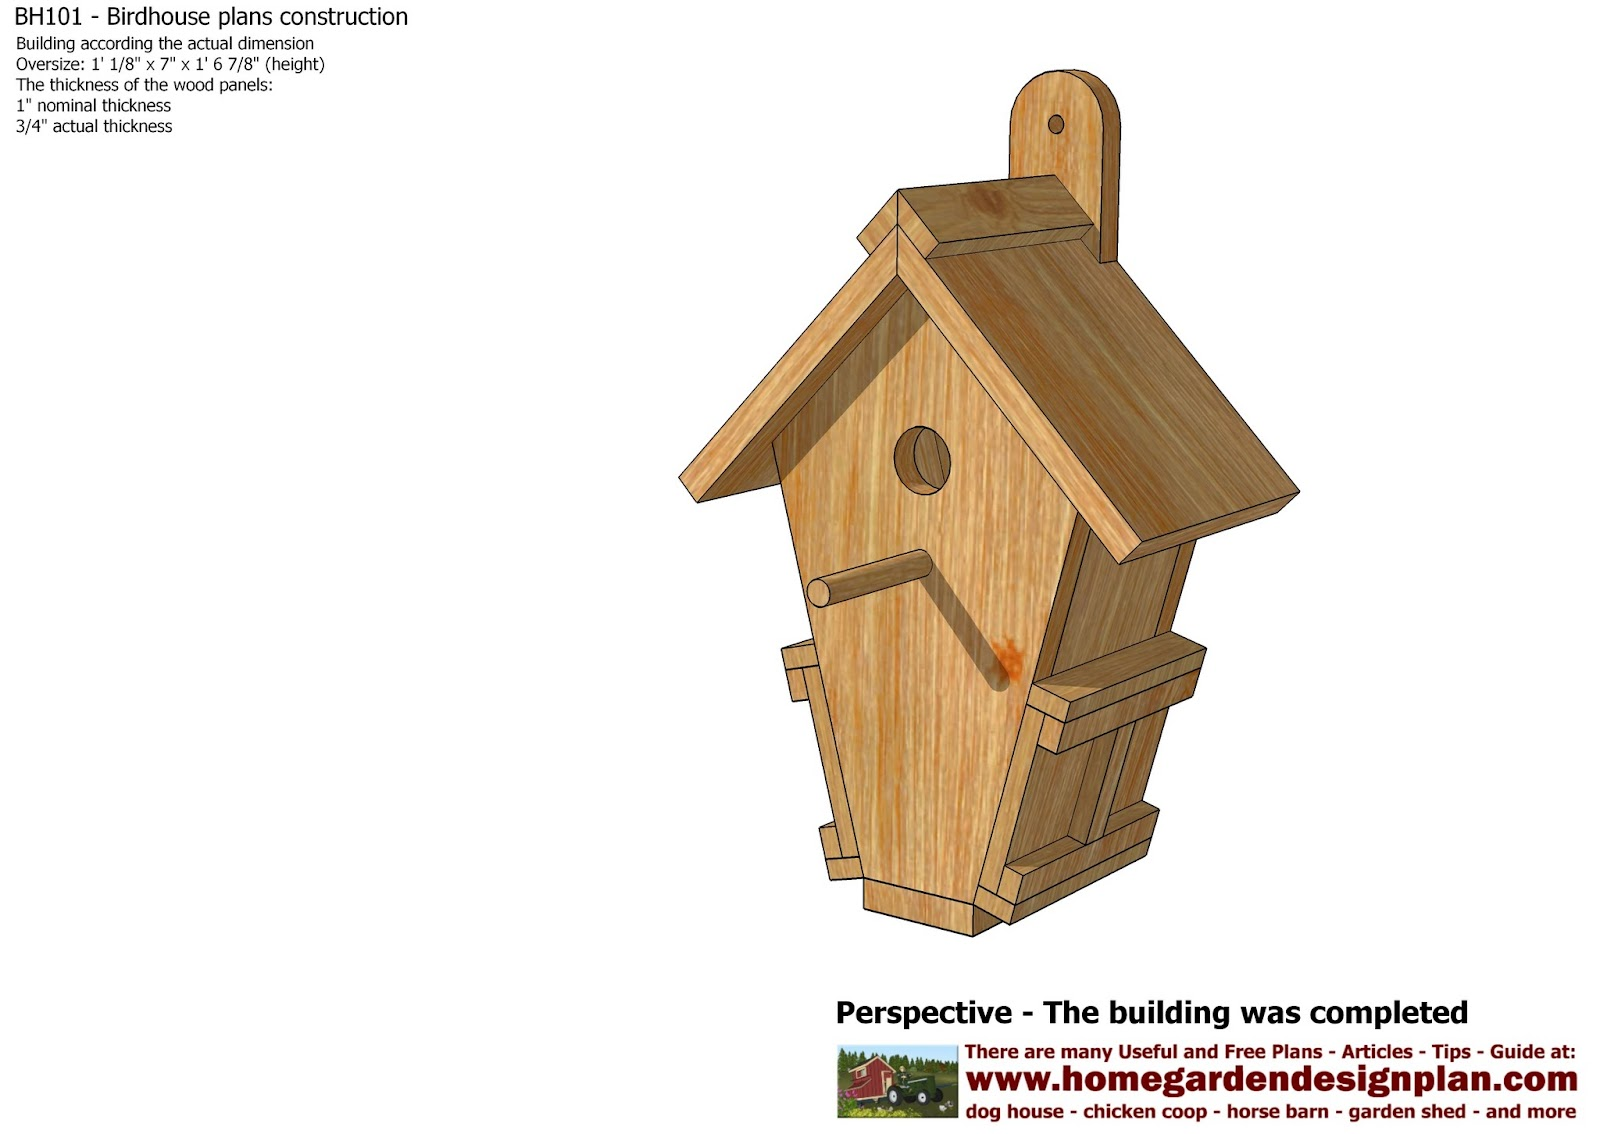 home garden plans BH101 Bird House Plans Construction Bird